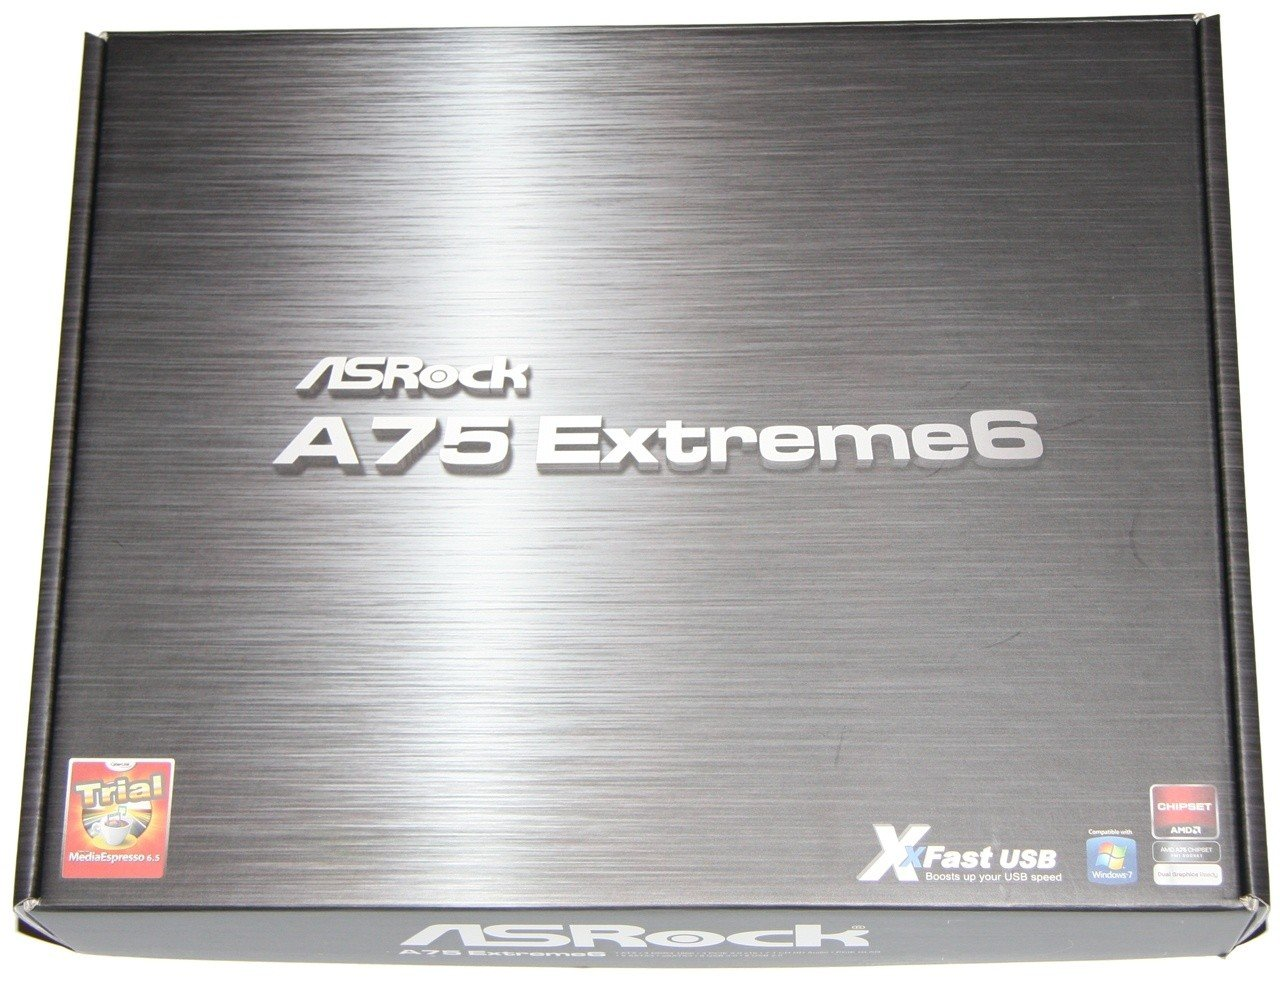 asrock_a75_extreme6_amd_a75_motherboard_review